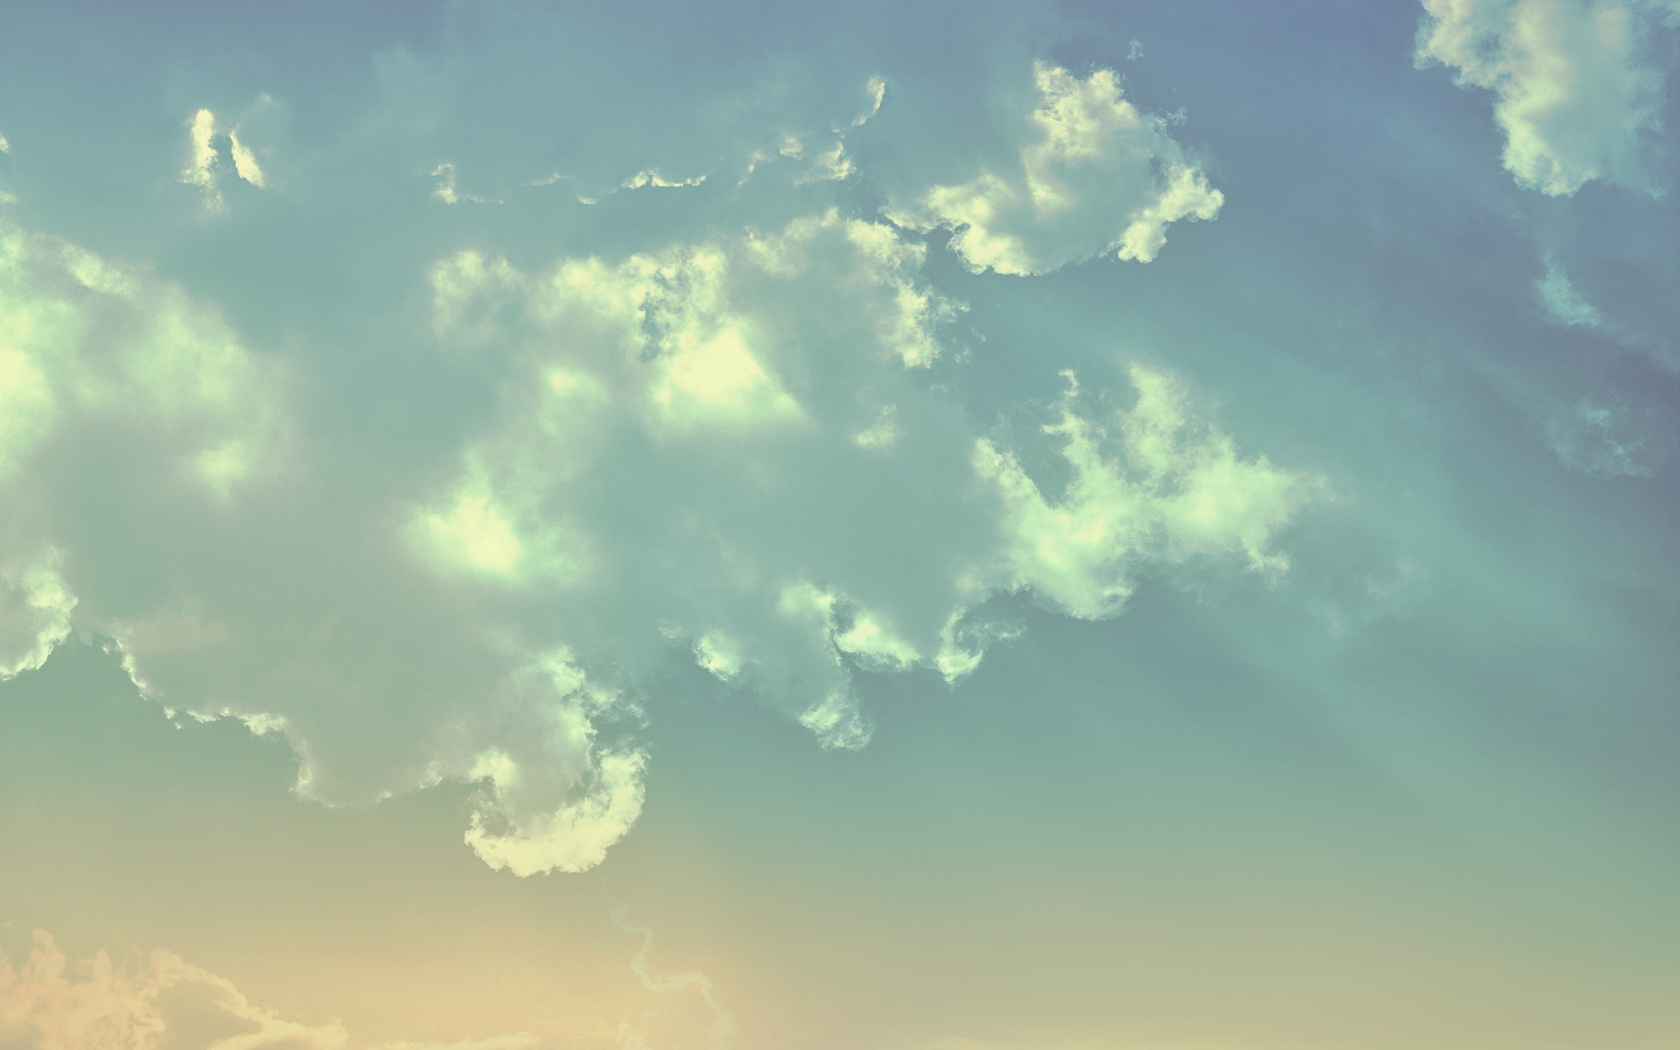 http://static.tumblr.com/8lsg8vy/U5clrb29u/blue-beige-clouds-wallpaper-1680x1050edit.jpg